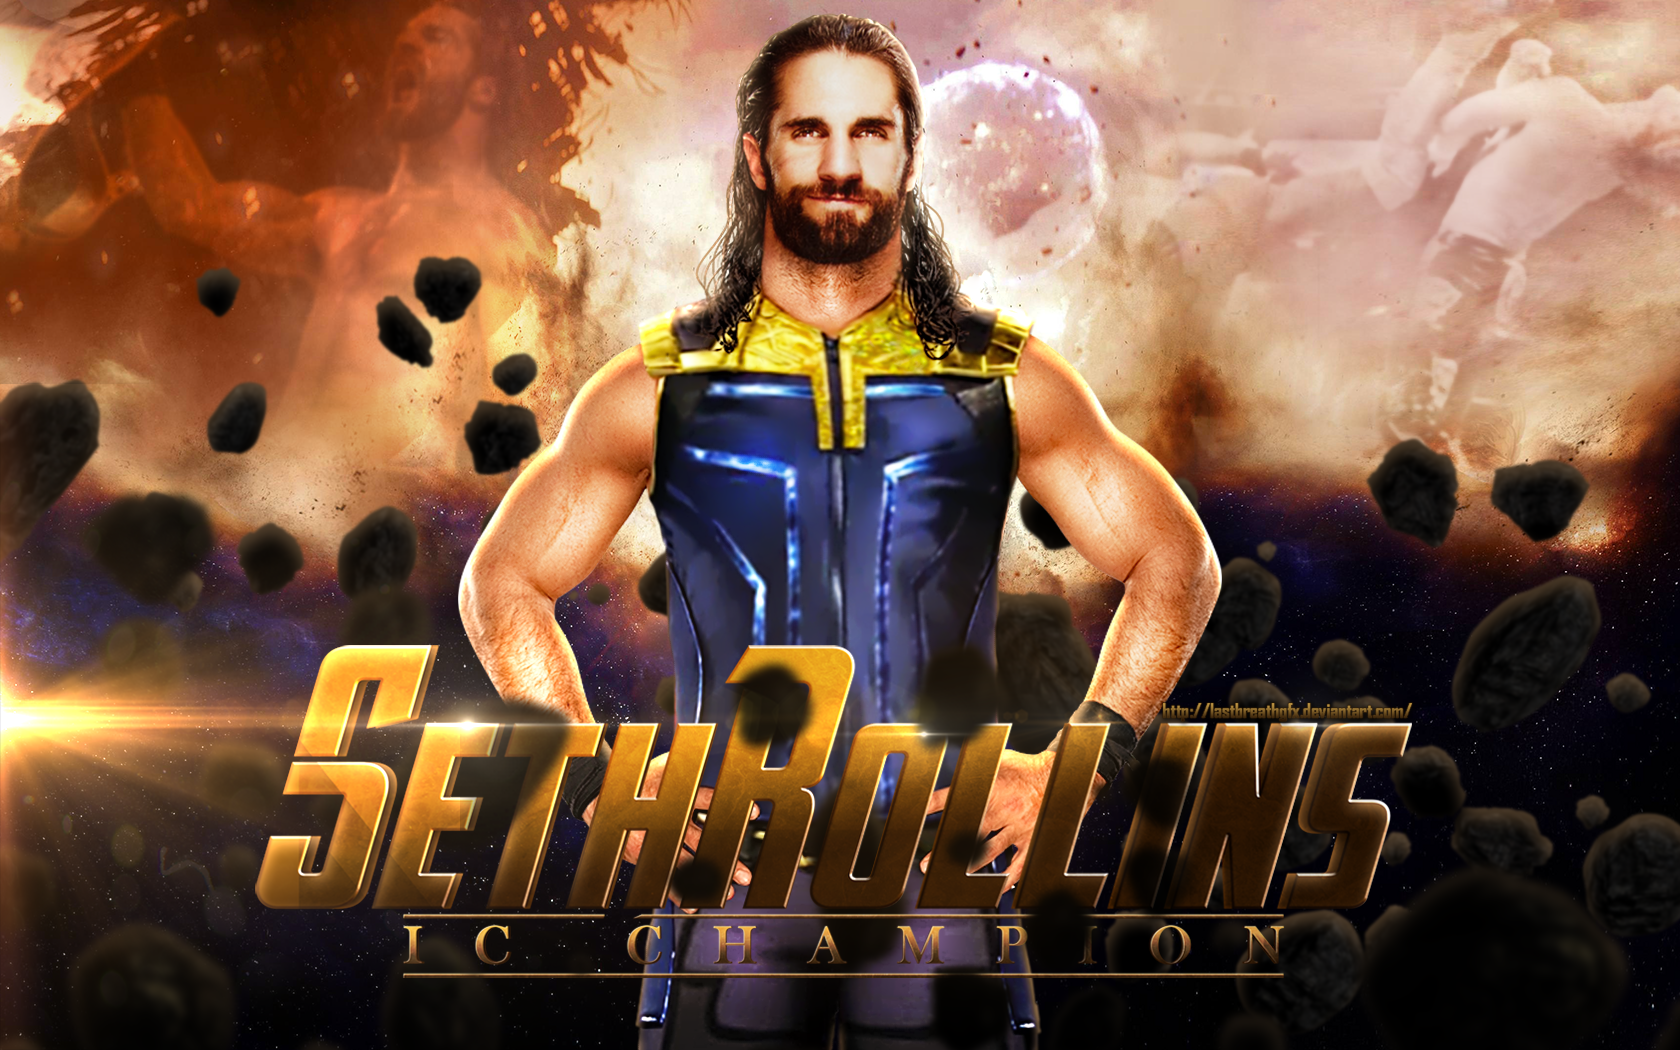 Seth Rollins Hd Wallpaper On Wallpaperget Com